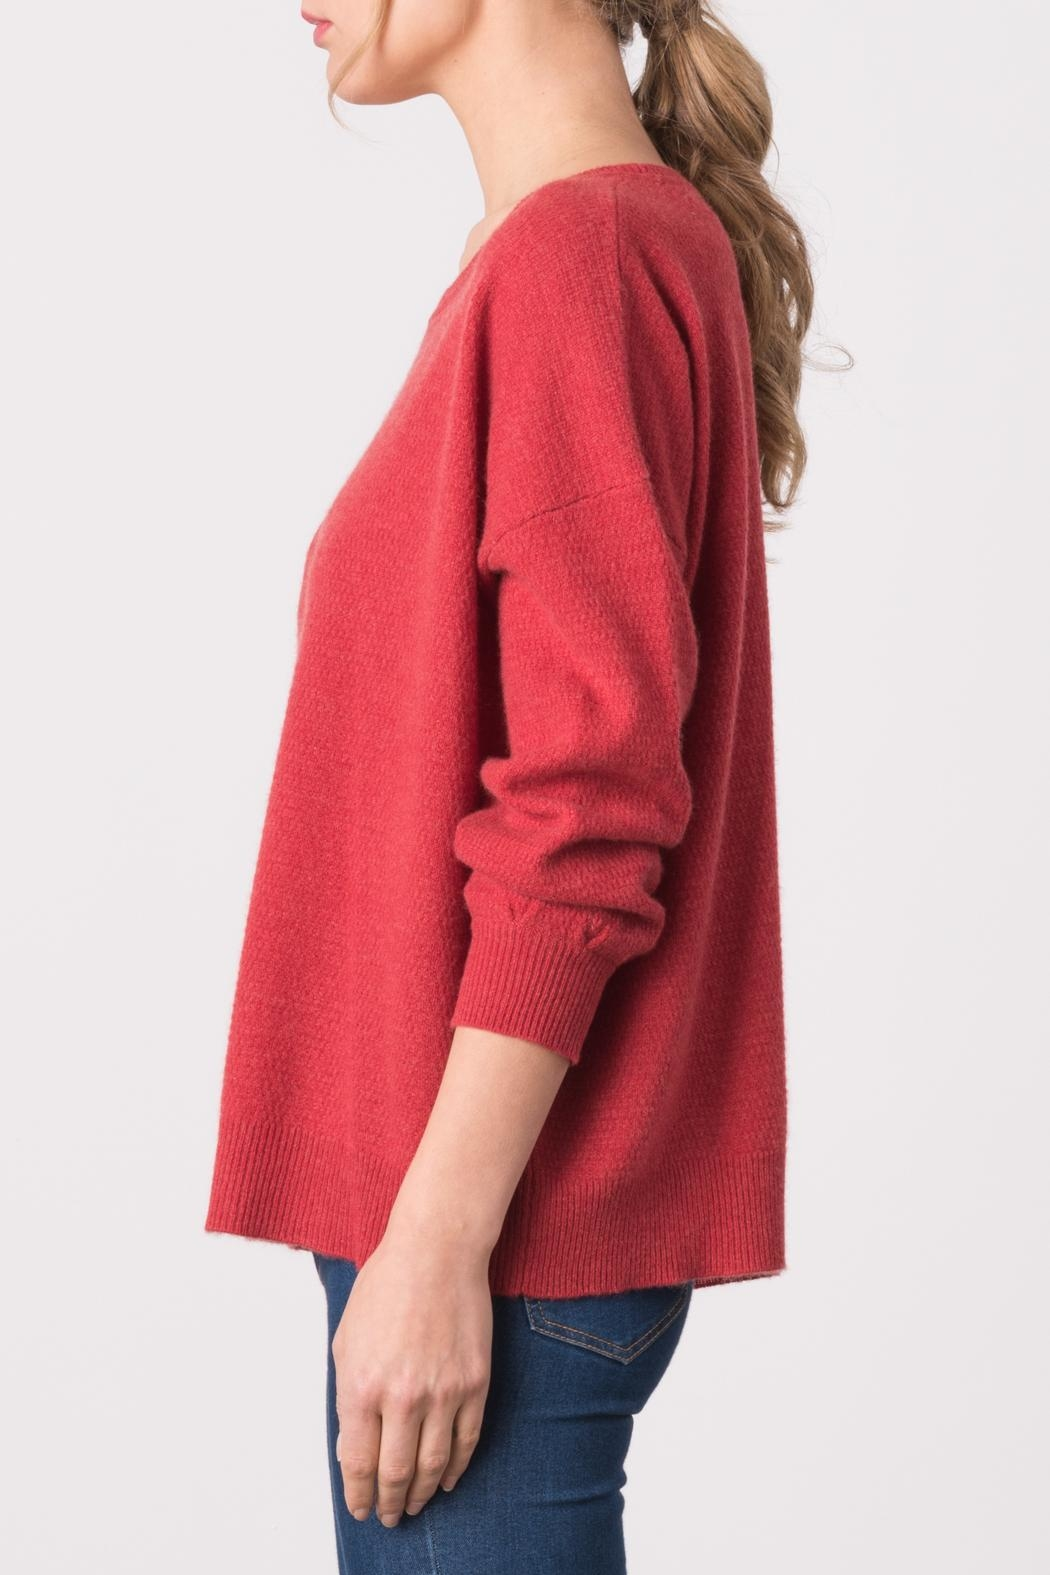 Margaret O'Leary Naya Pullover Top - Front Full Image